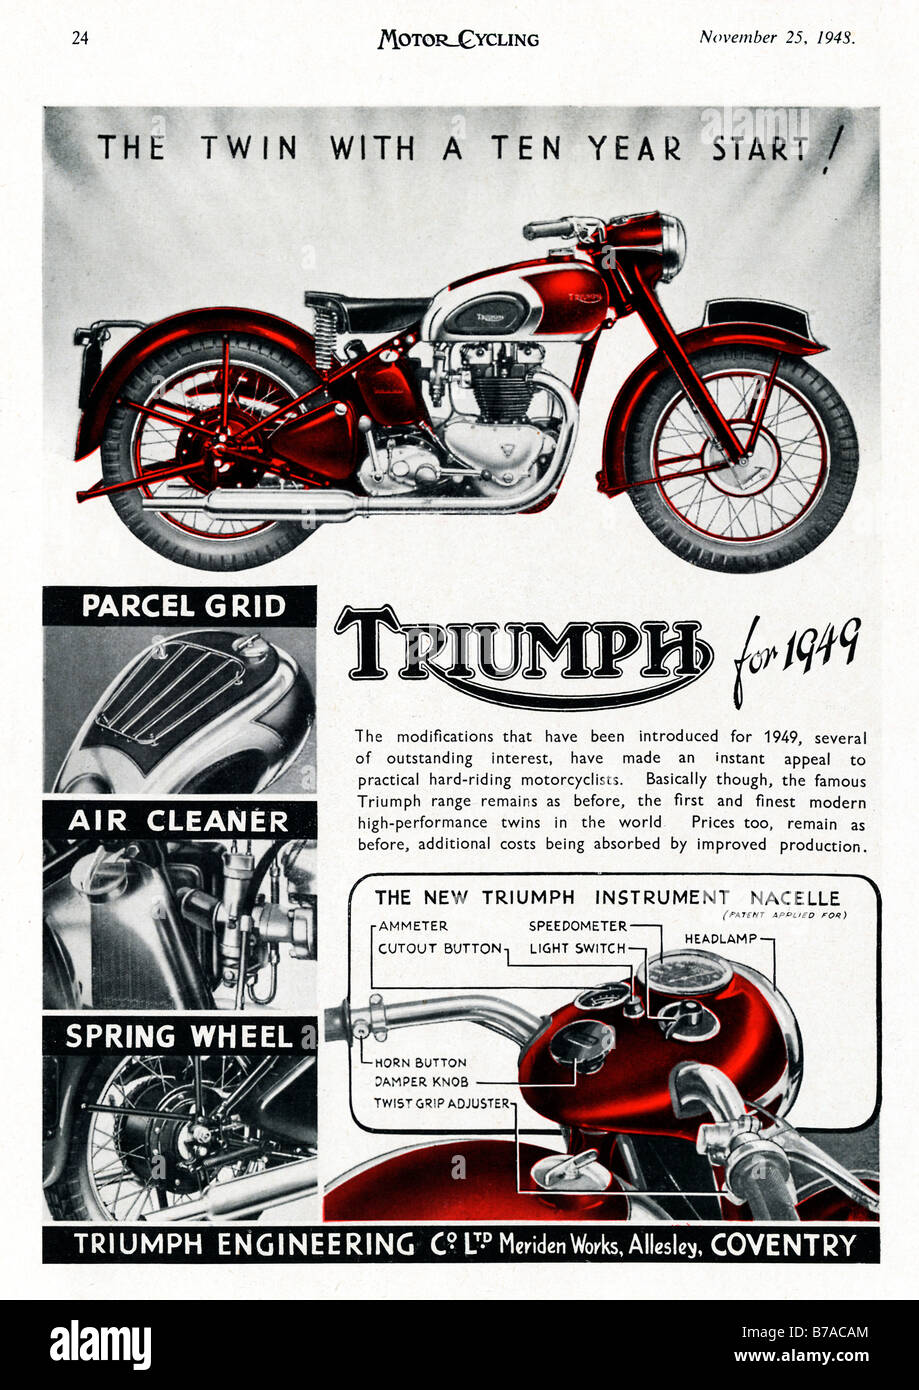 Triumph 1948 advert for the 1949 model of the British twin motorbike made in Coventry - Stock Image